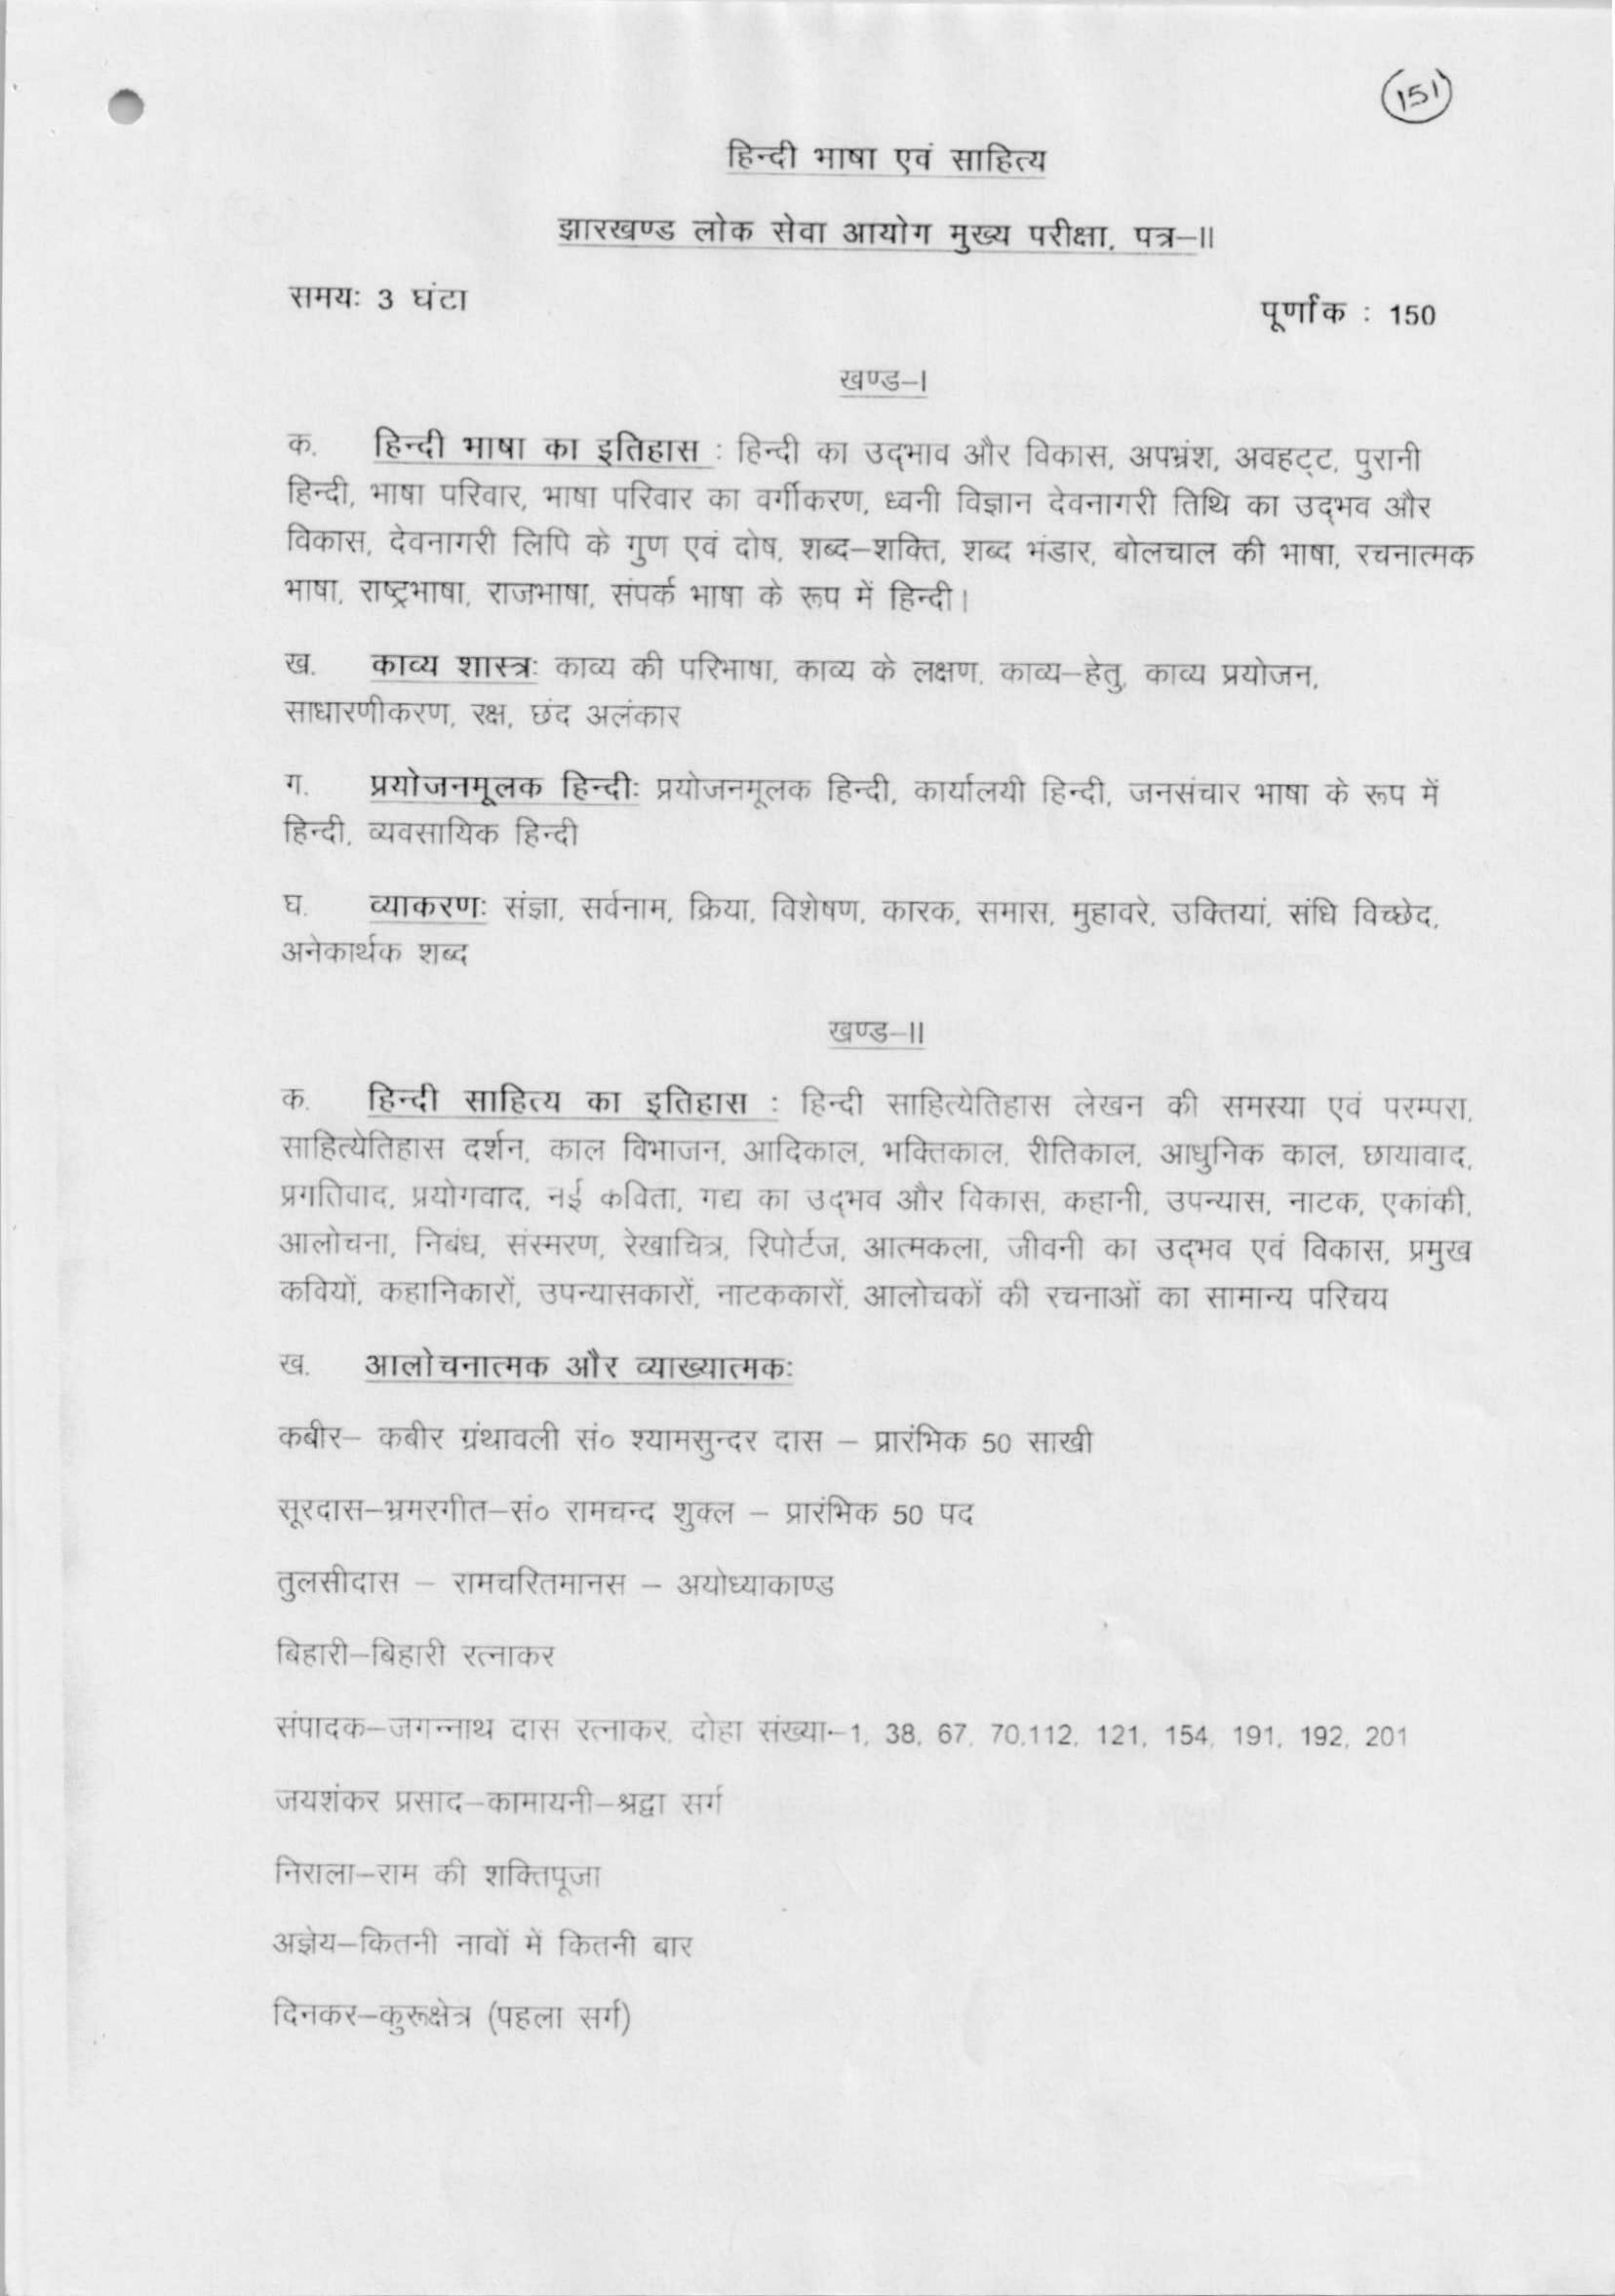 JPSC_syllabus_ccs_exam_hindi_lit-1